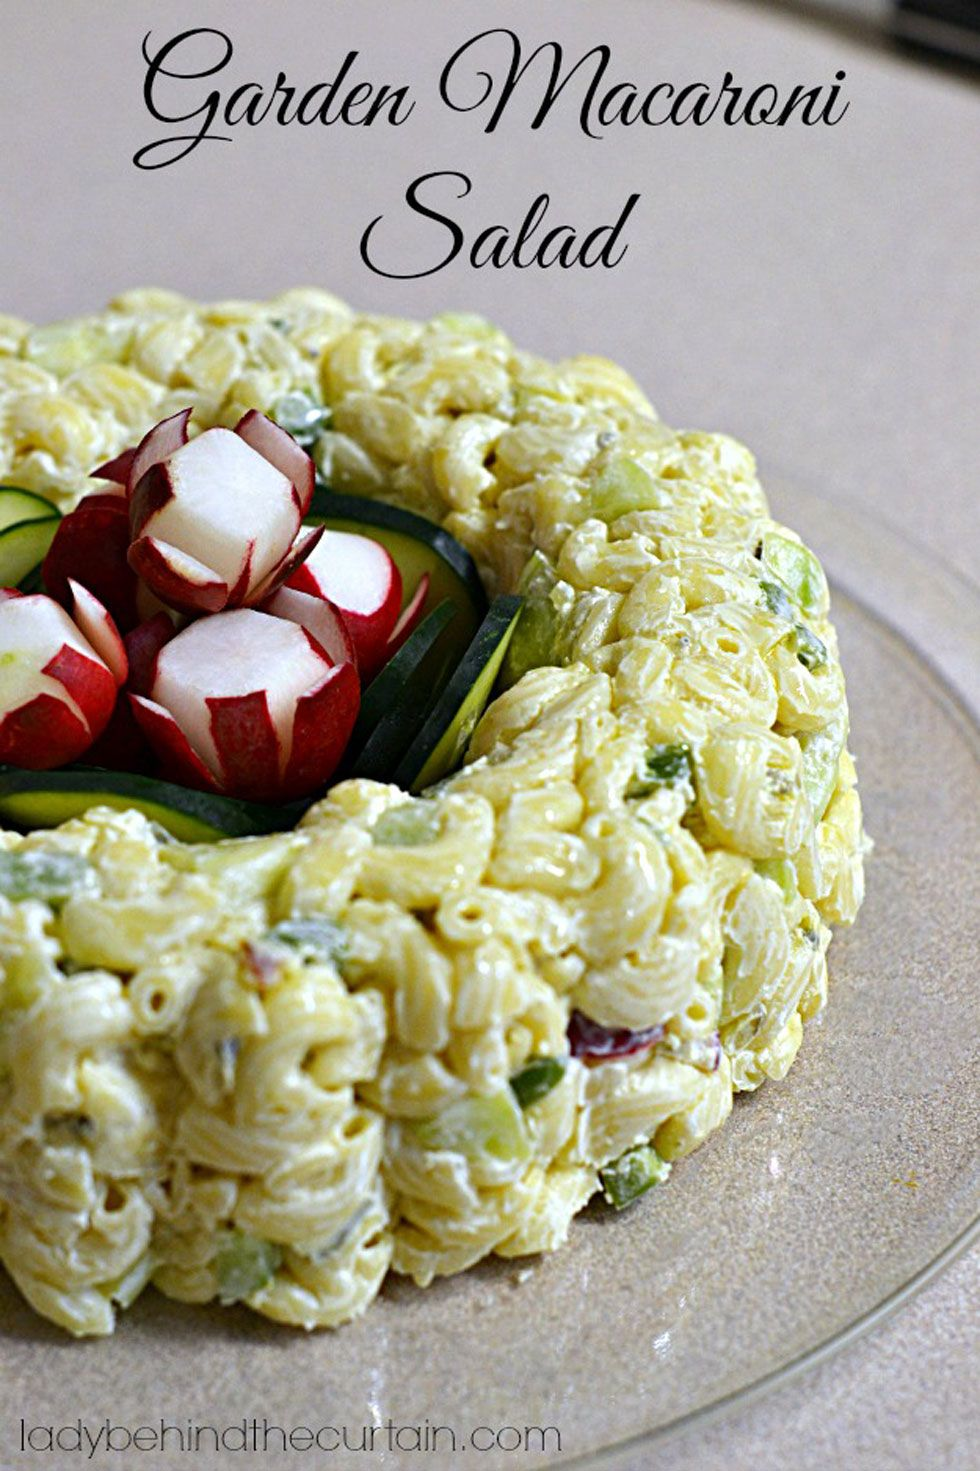 Forgo the typical salad bowl and serve macaroni salad by molding it in a bundt pan.